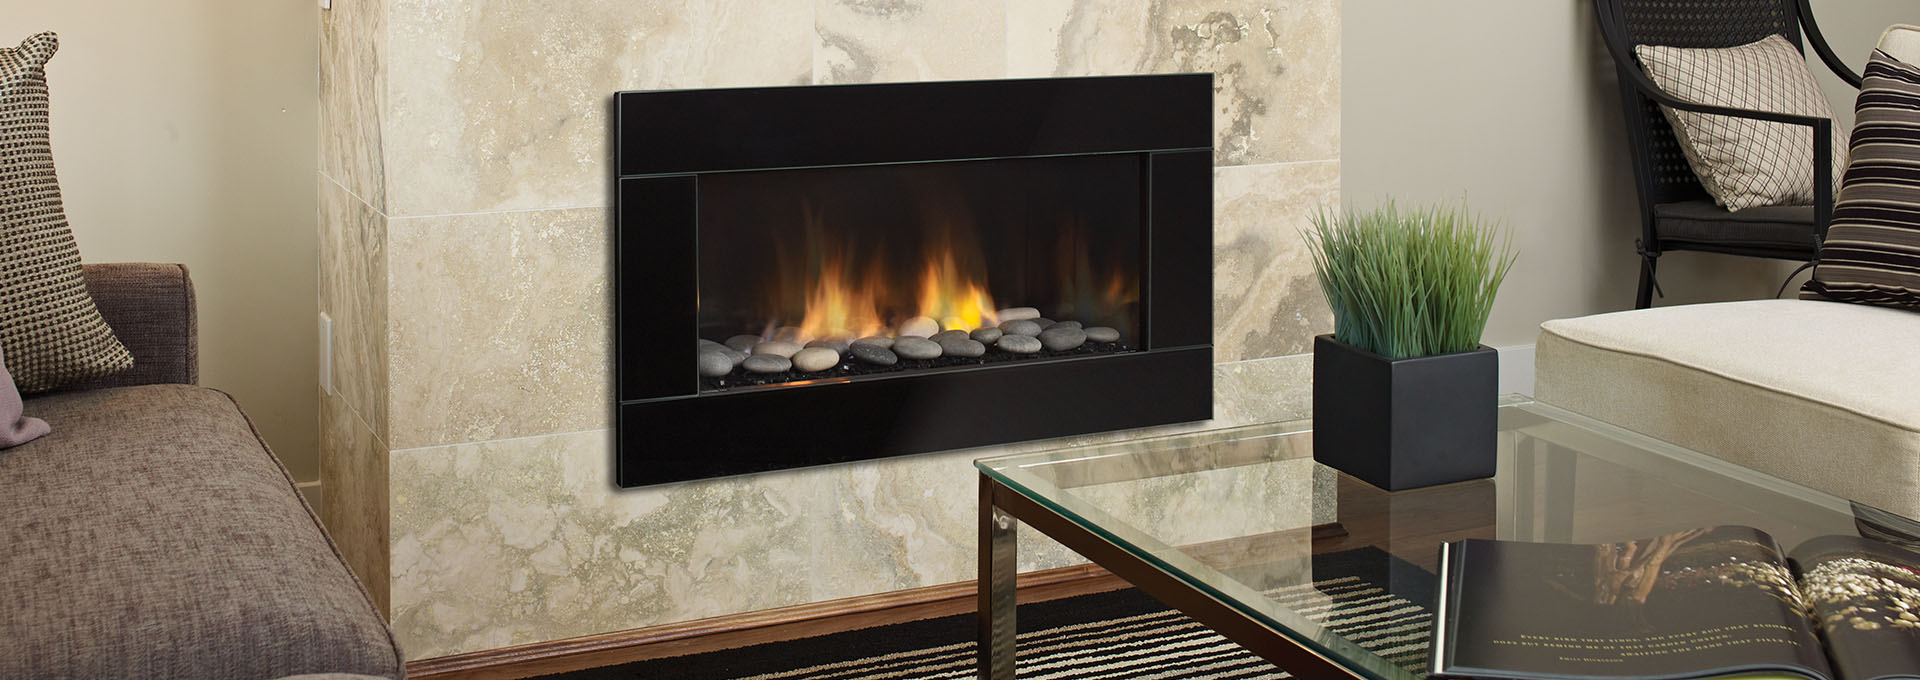 Shown With Verona Gl Faceplate In Black Grey Volcanic Stones And Enamel Reflective Panels